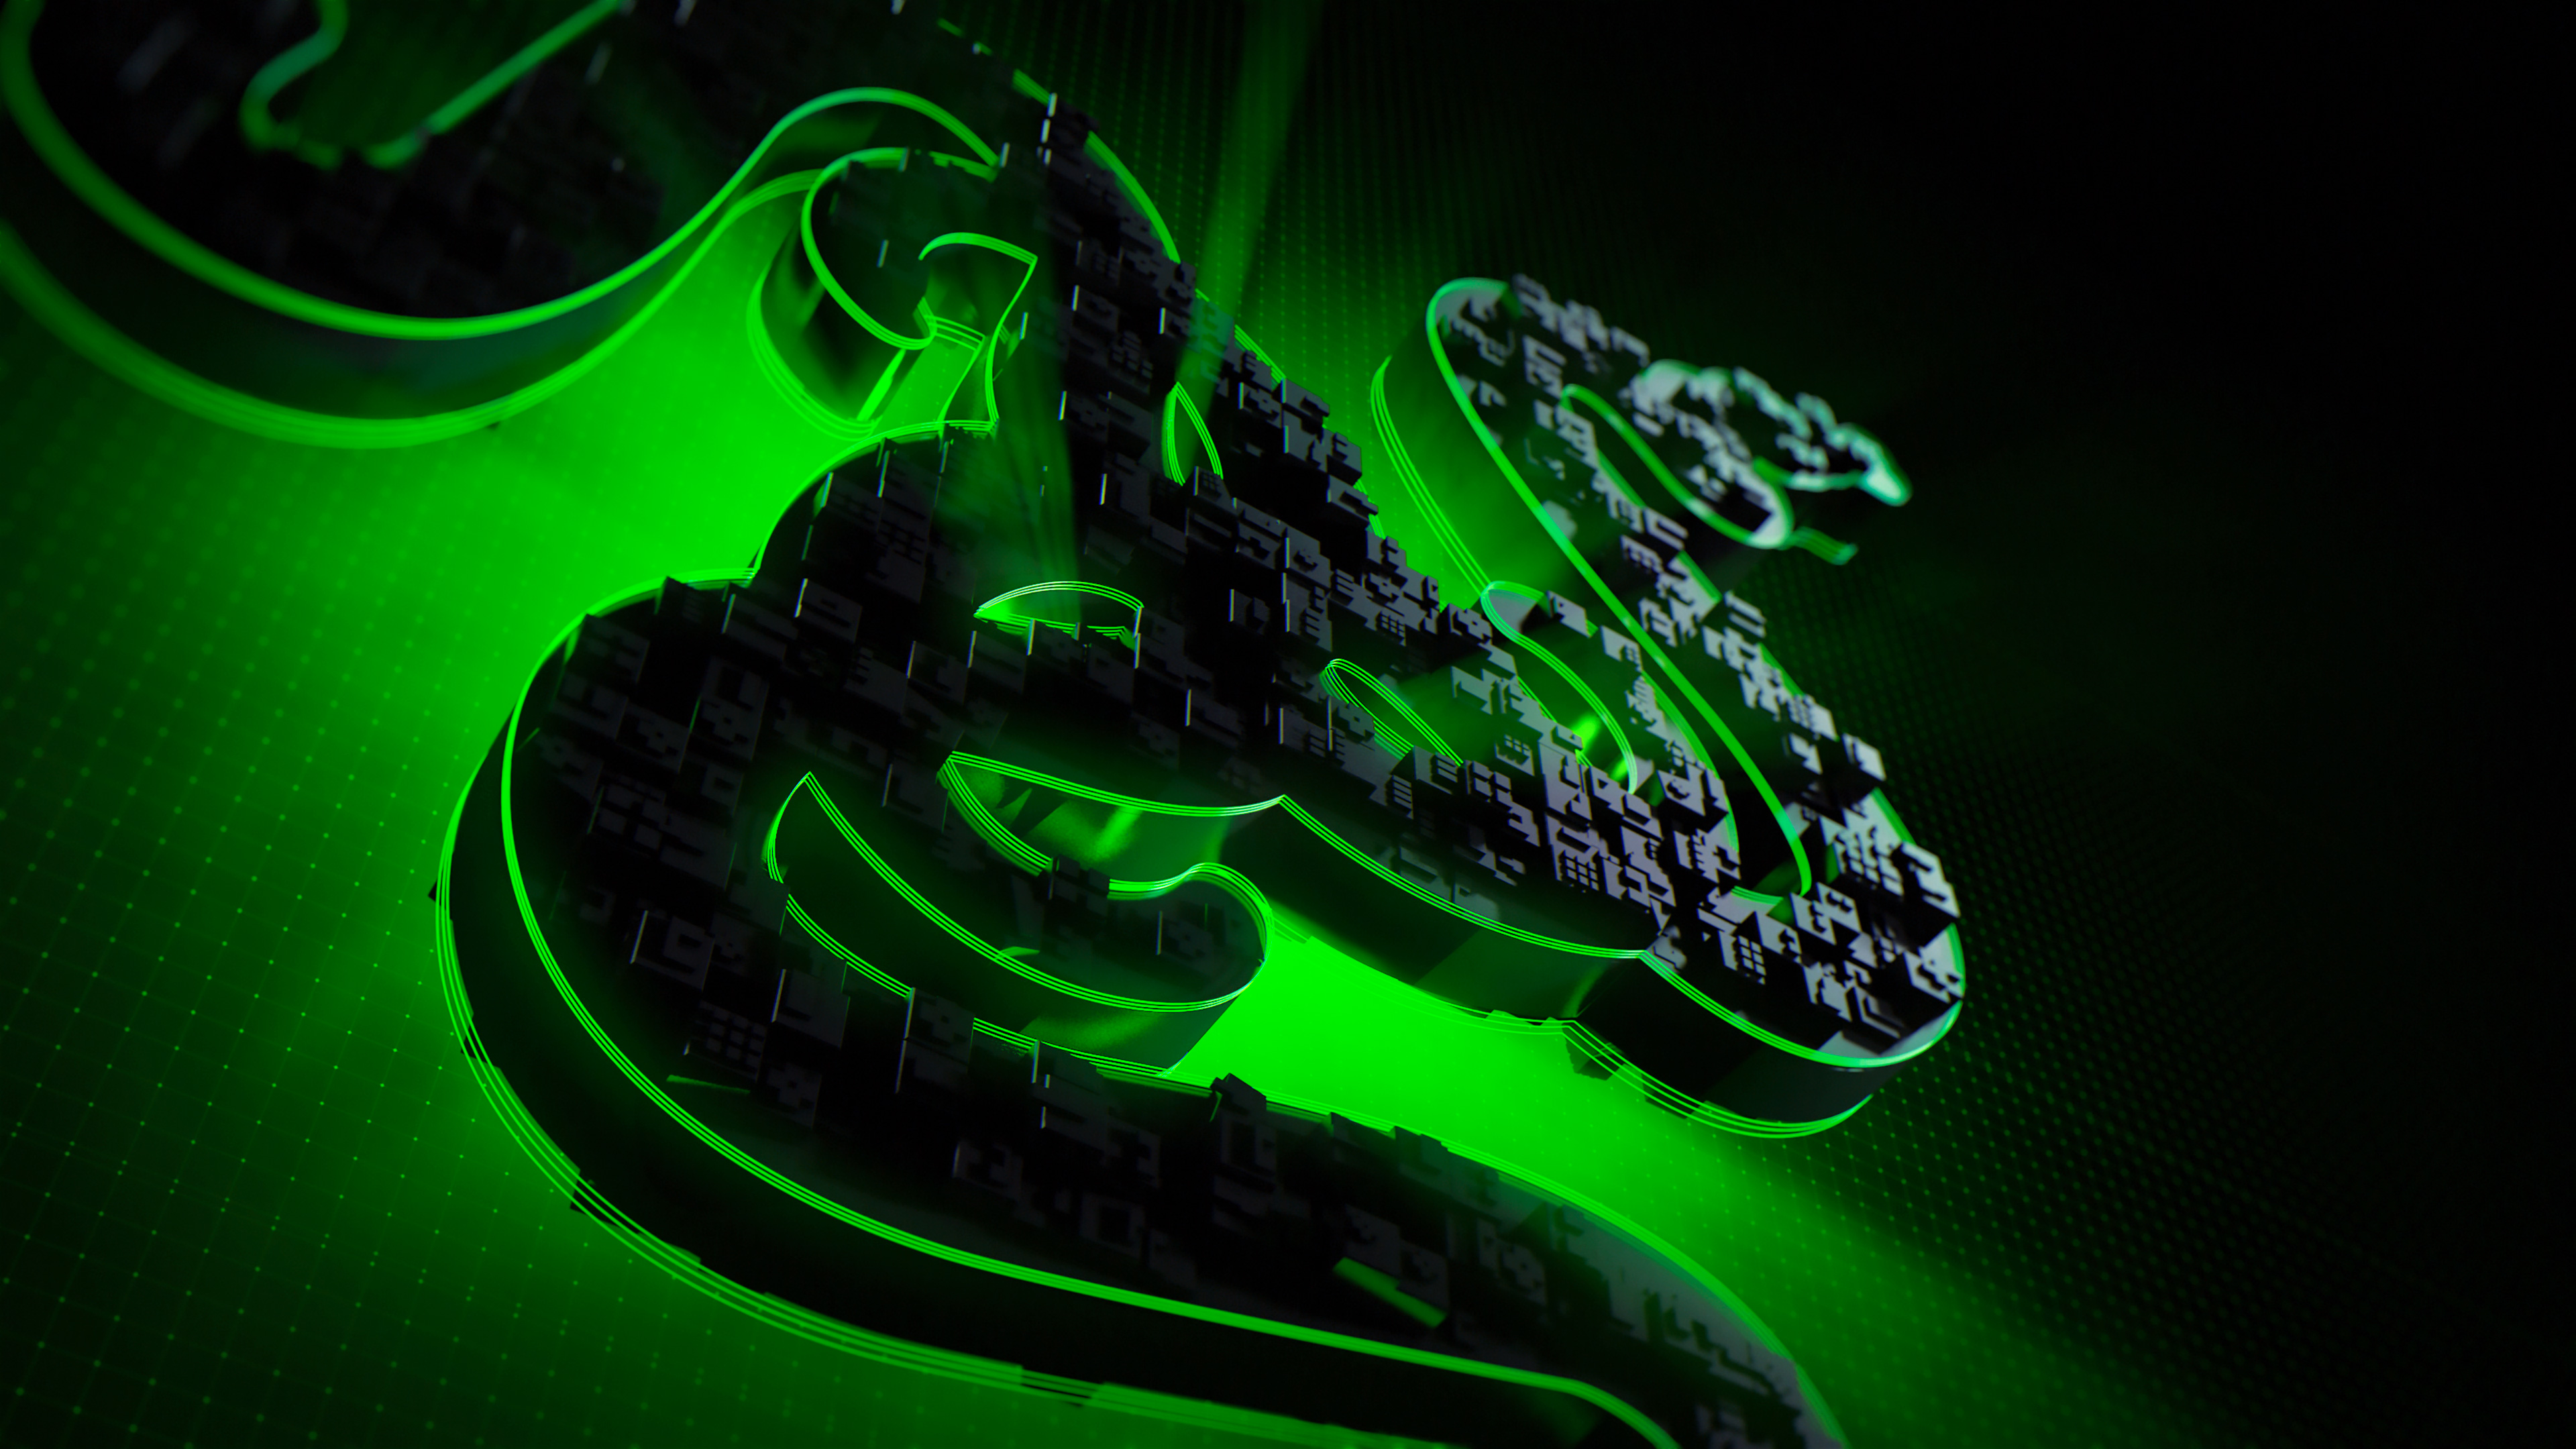 Razer Wallpaper 4k Pc 3840x2160 Wallpaper Teahub Io